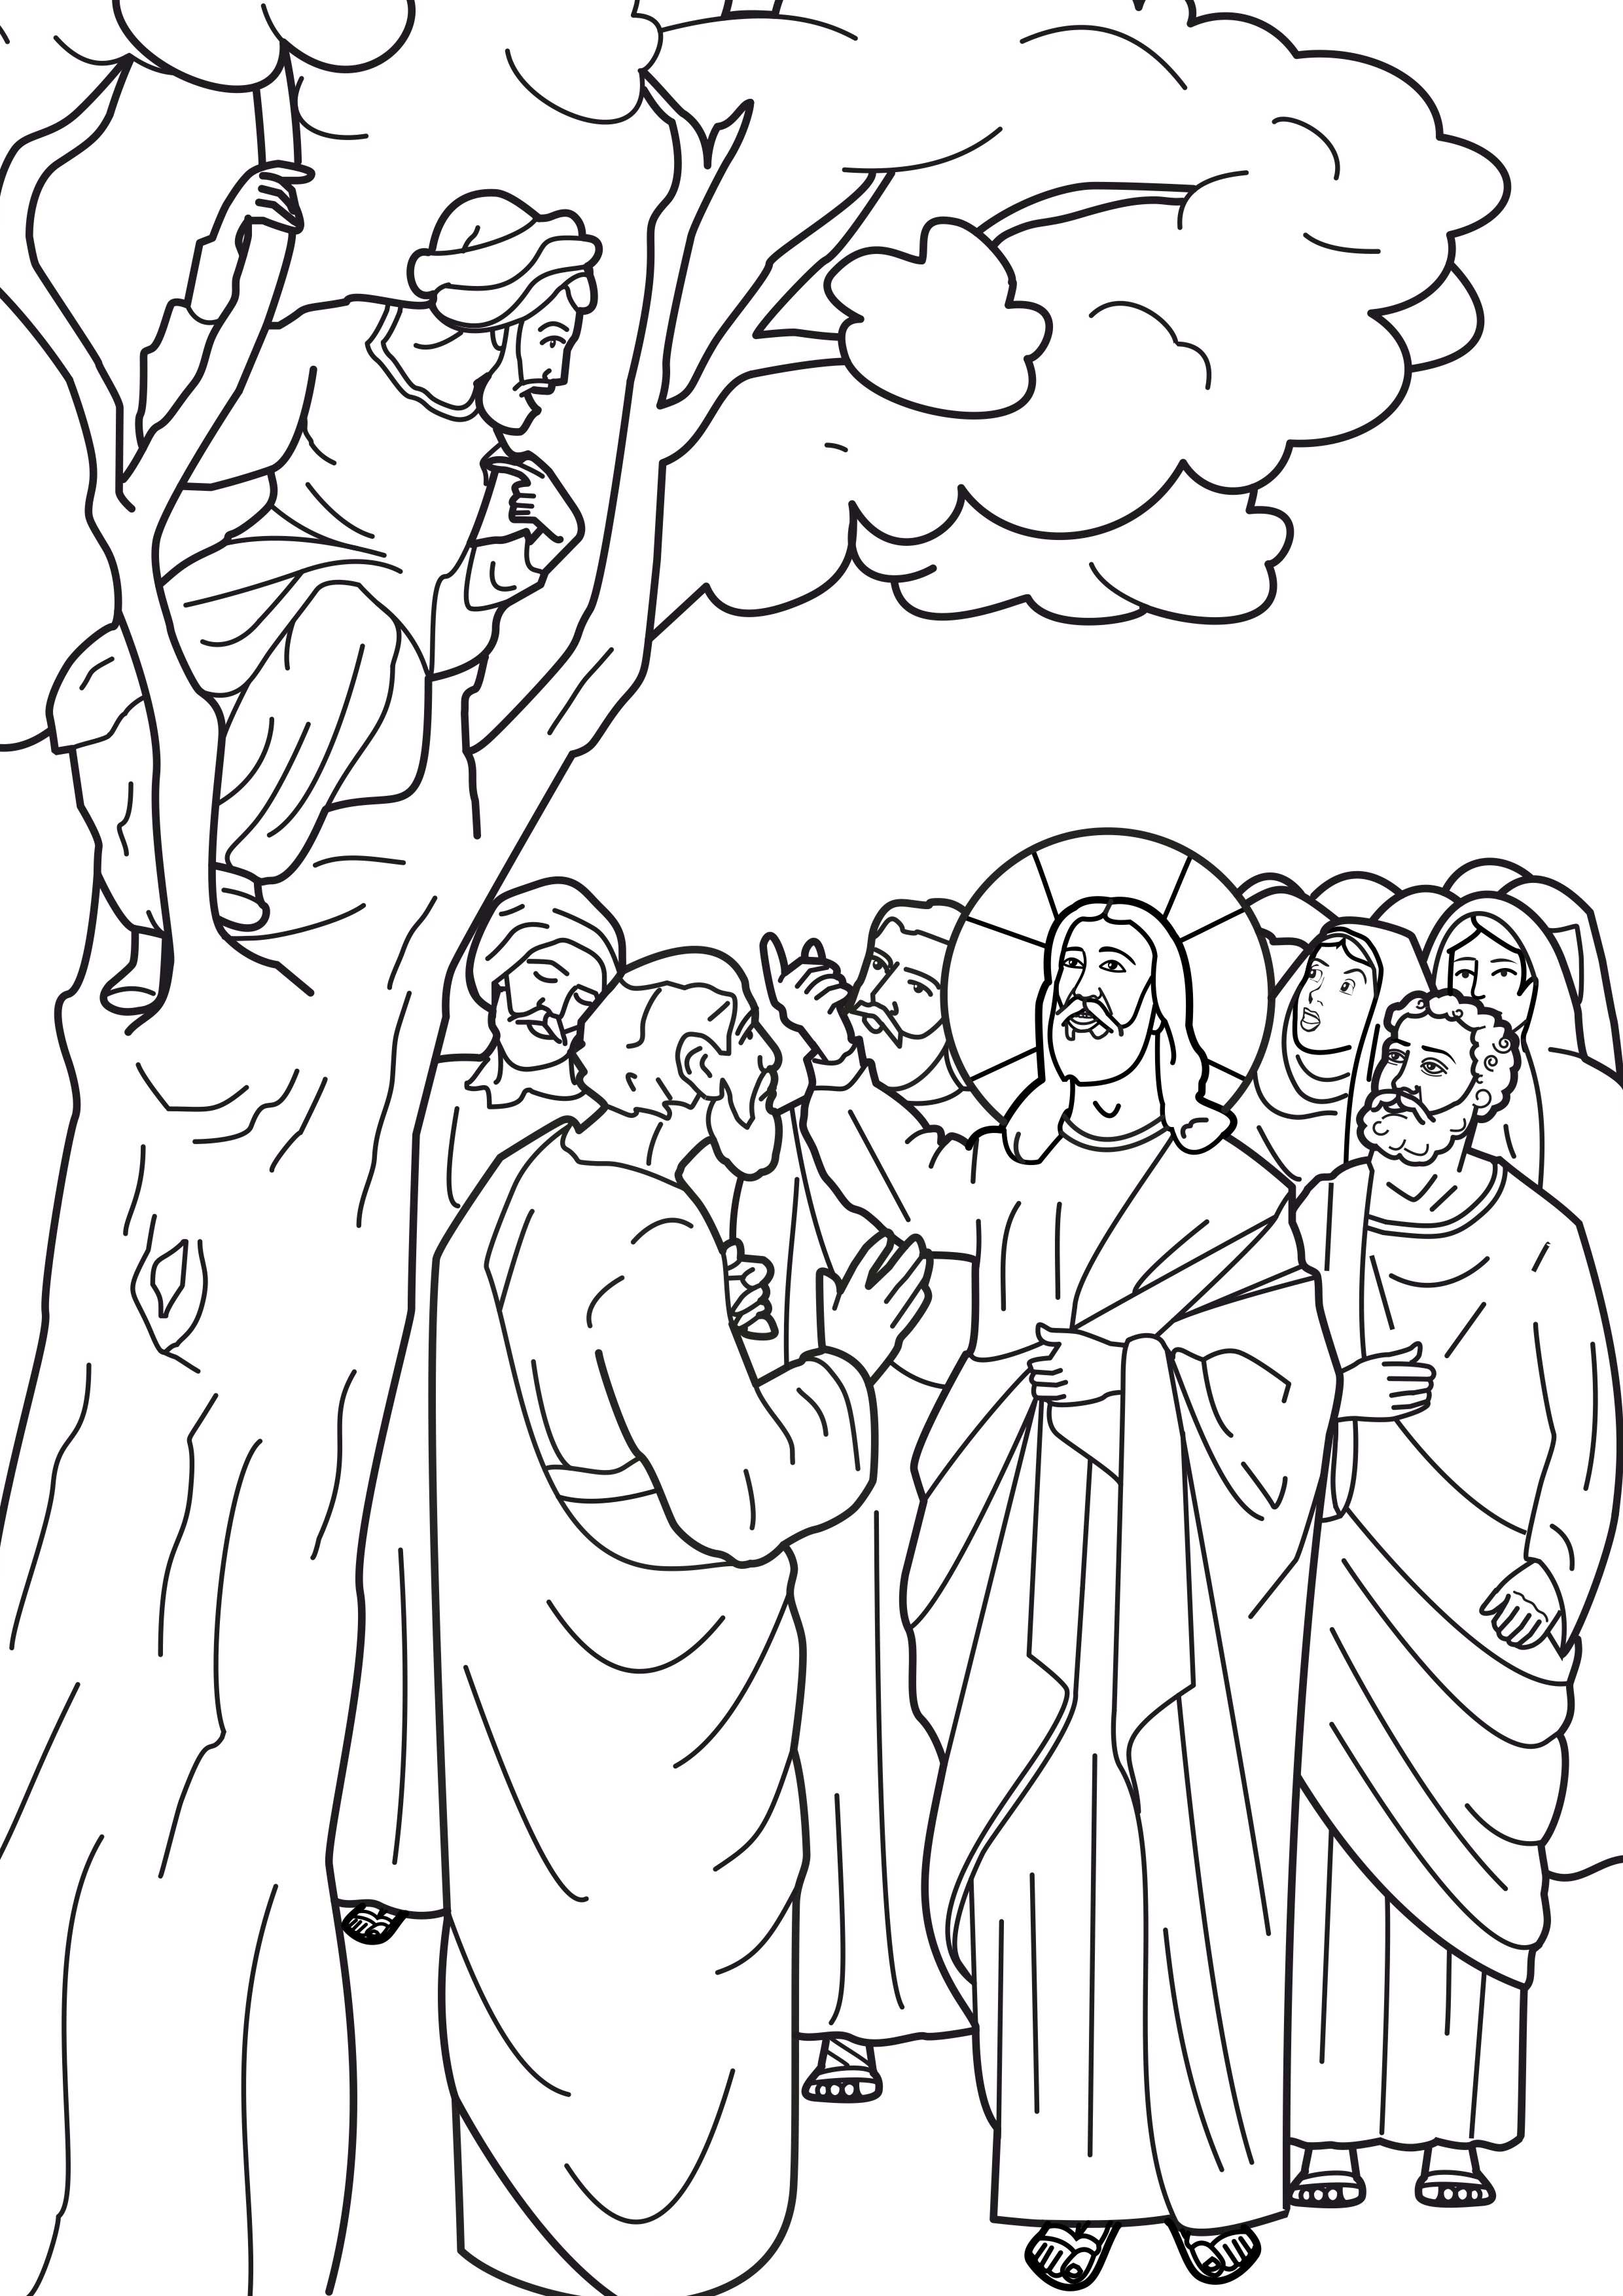 luke 19 10 coloring pages - photo#7